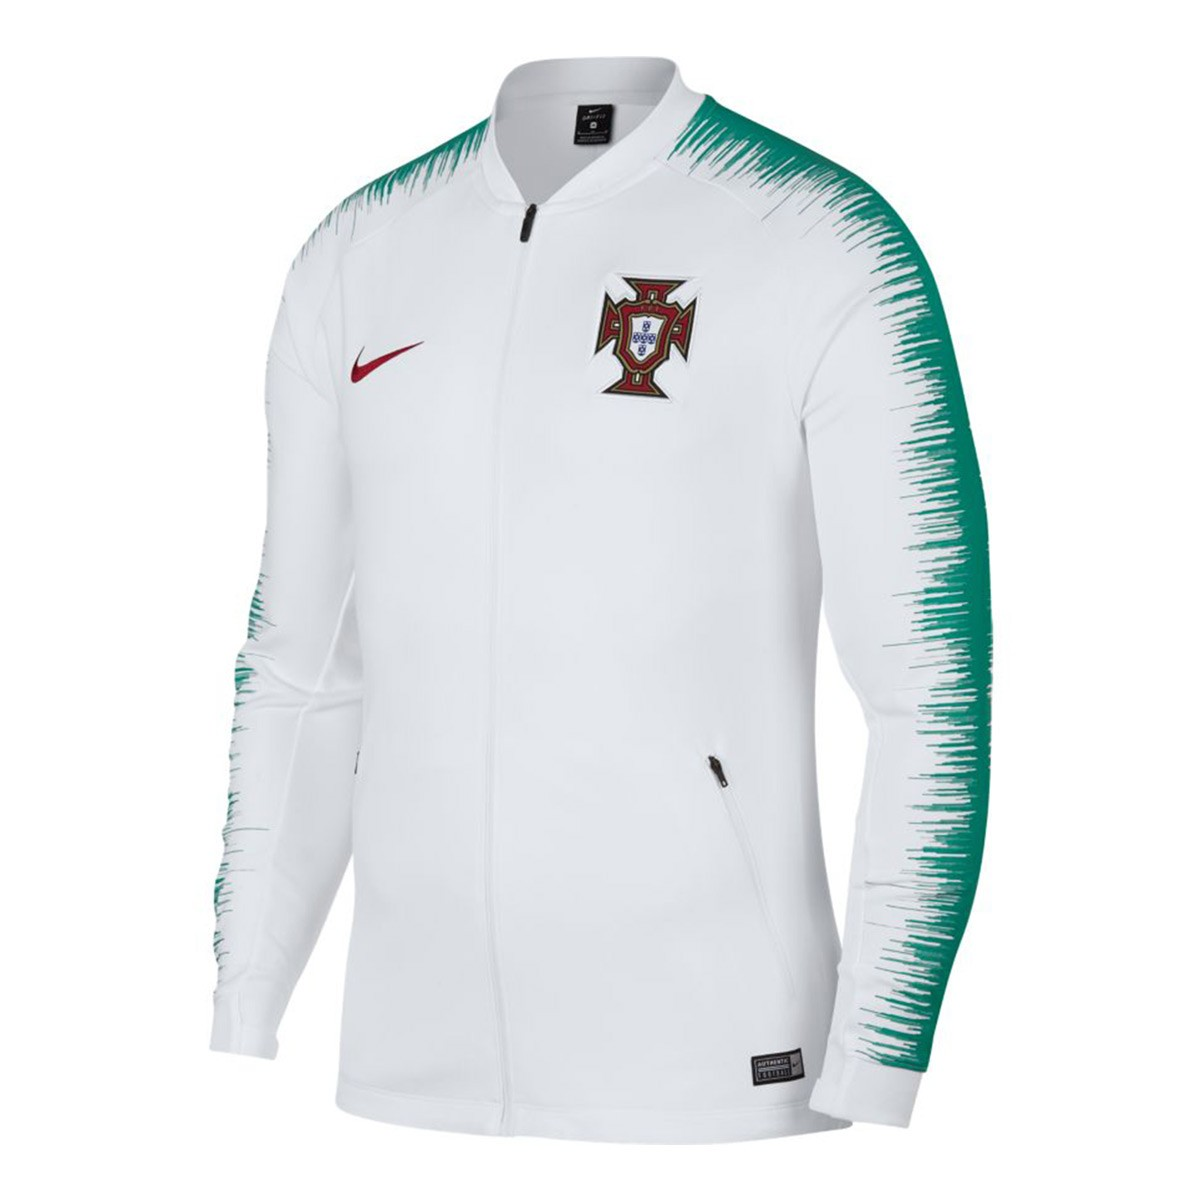 la moitié 392e6 54239 Chaqueta Portugal Pre-Match 2018-2019 White-Kinetic green-Gym red